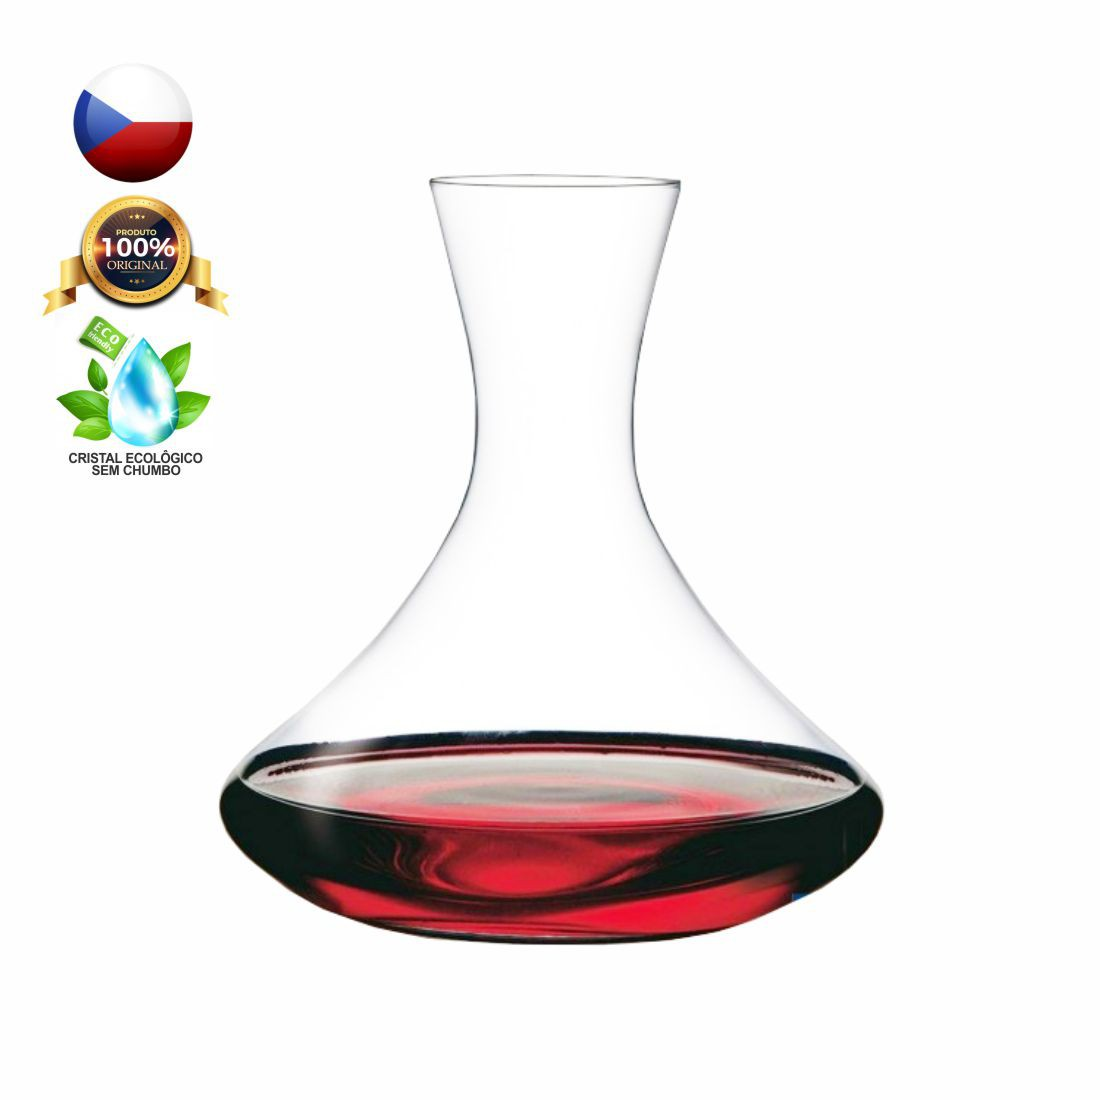 DECANTER CRISTAL BOHEMIA 1500 ML